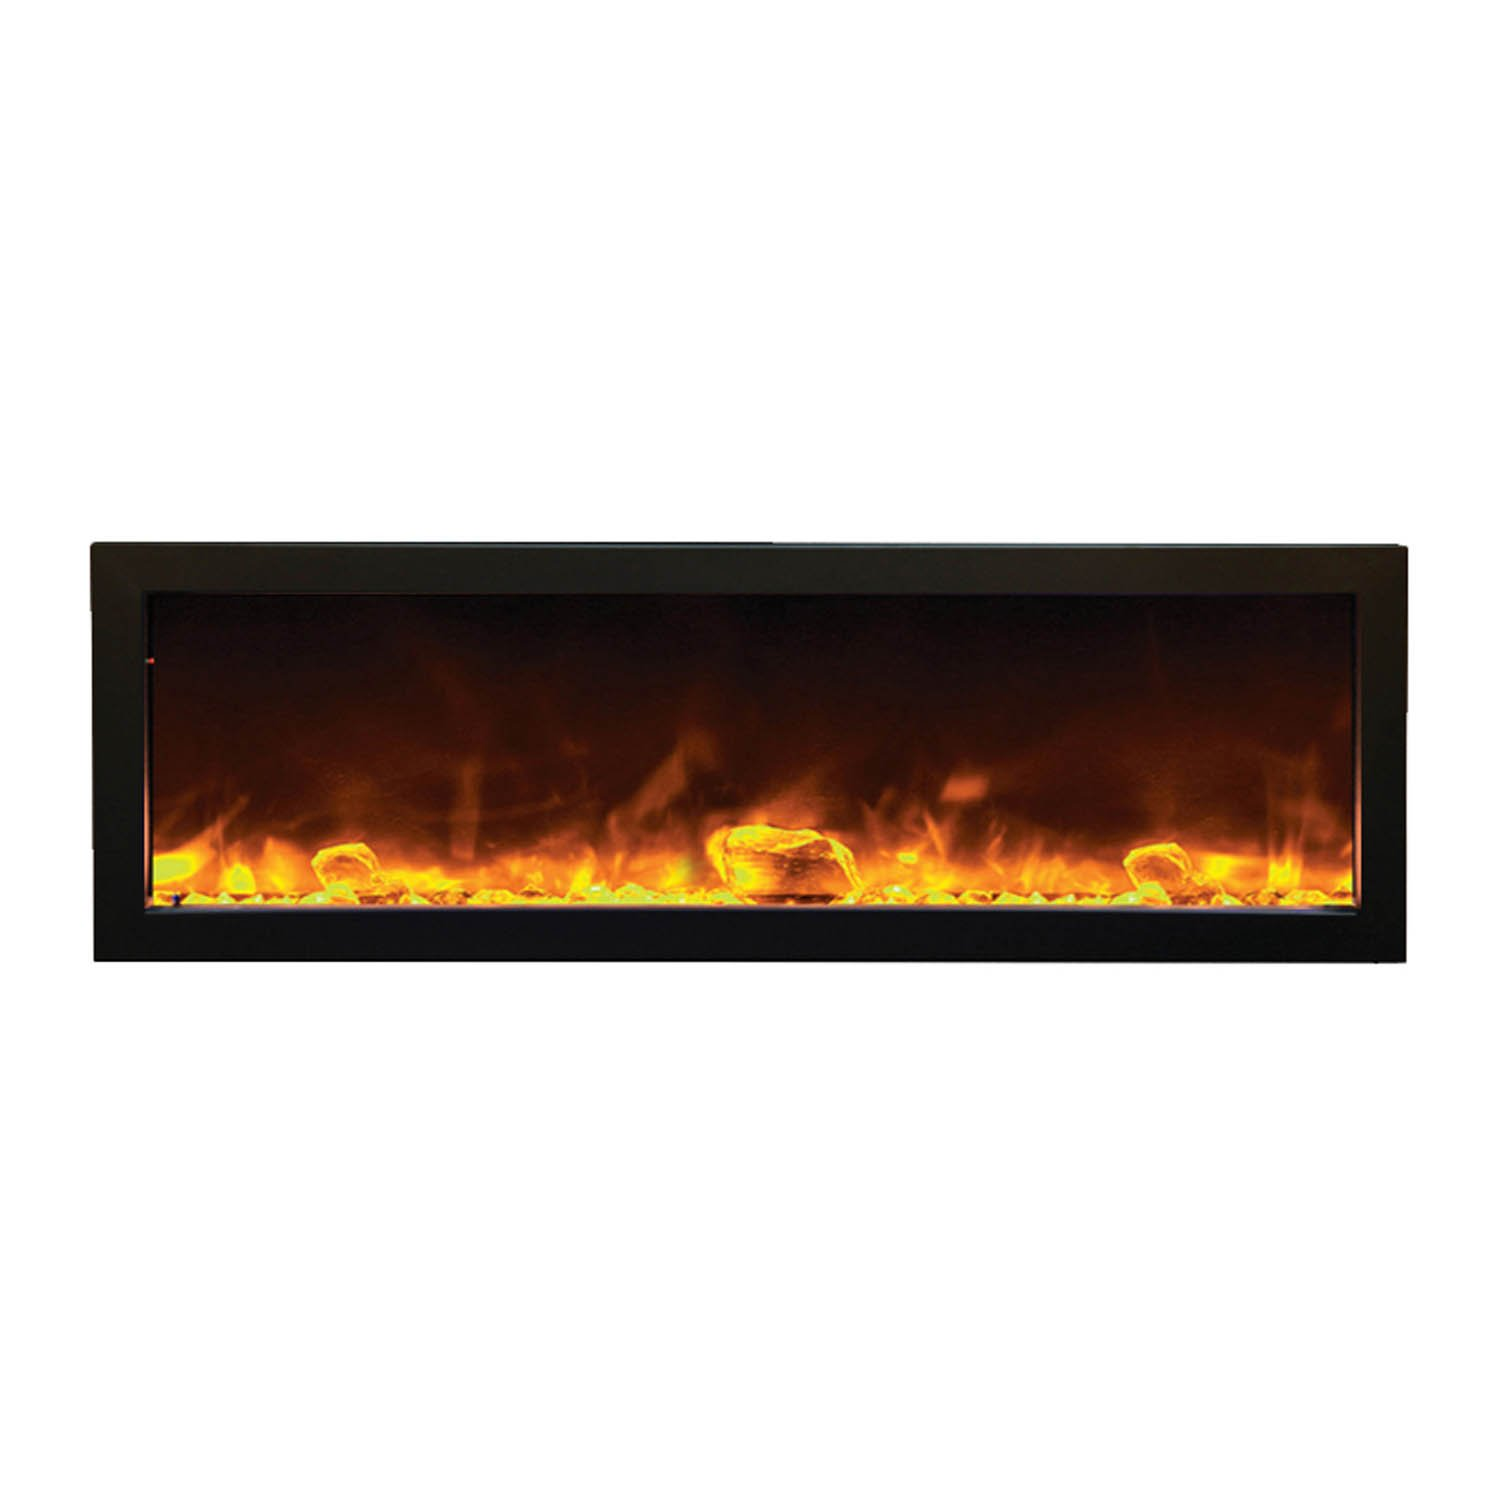 61y dLP50uL. SL1500  Top Result 50 Unique Best Wood Fireplace Insert